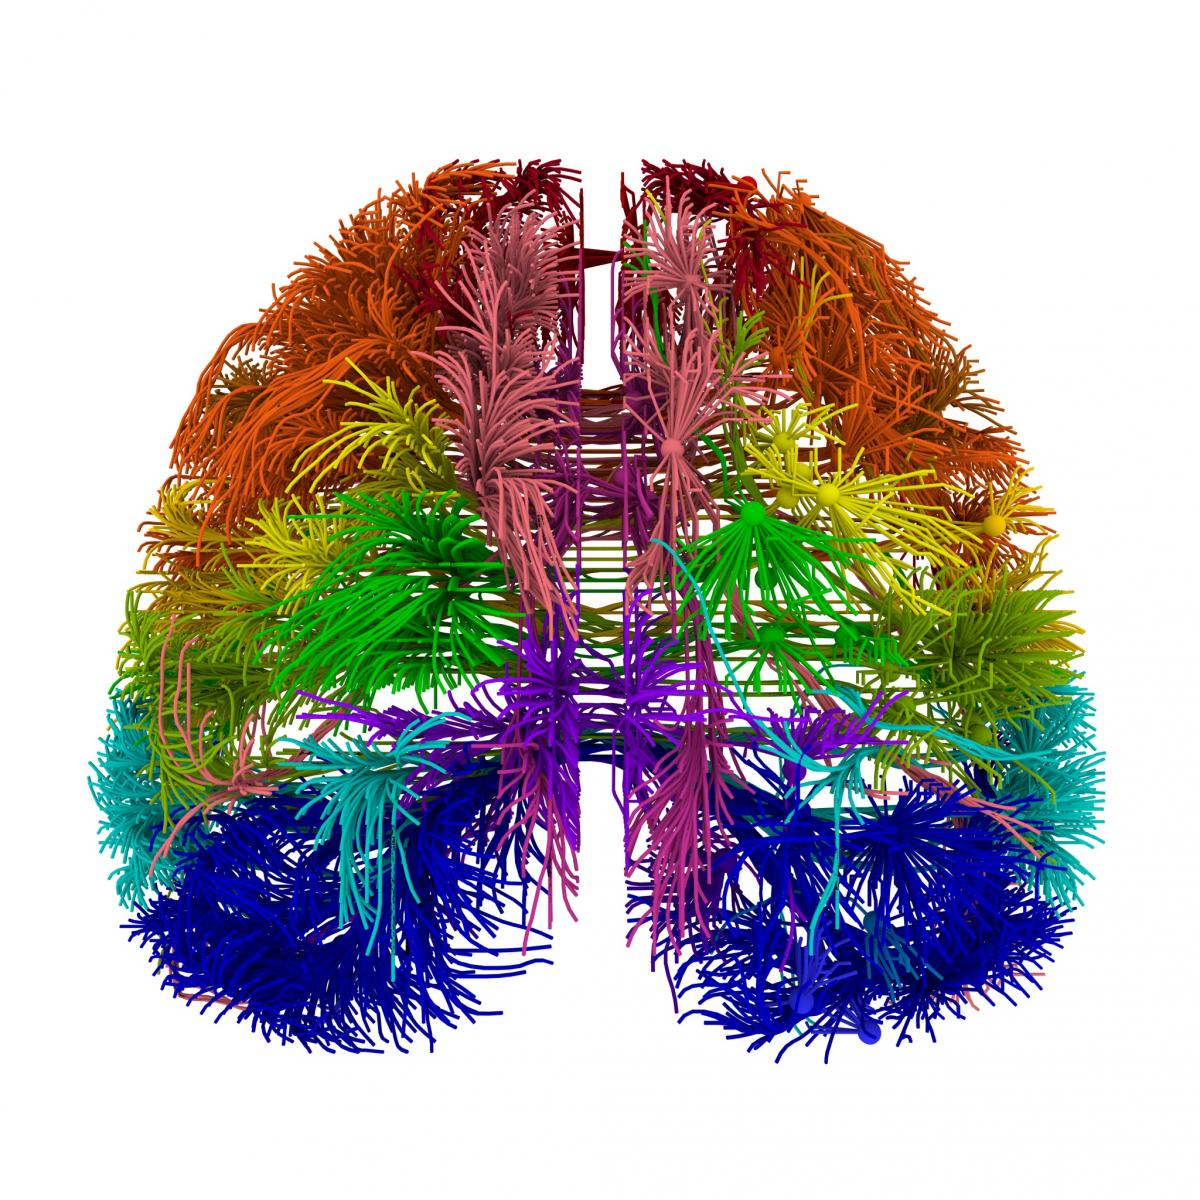 Research showcases most comprehensive wiring diagram of mammalian research showcases most comprehensive wiring diagram of mammalian brain to date ccuart Image collections